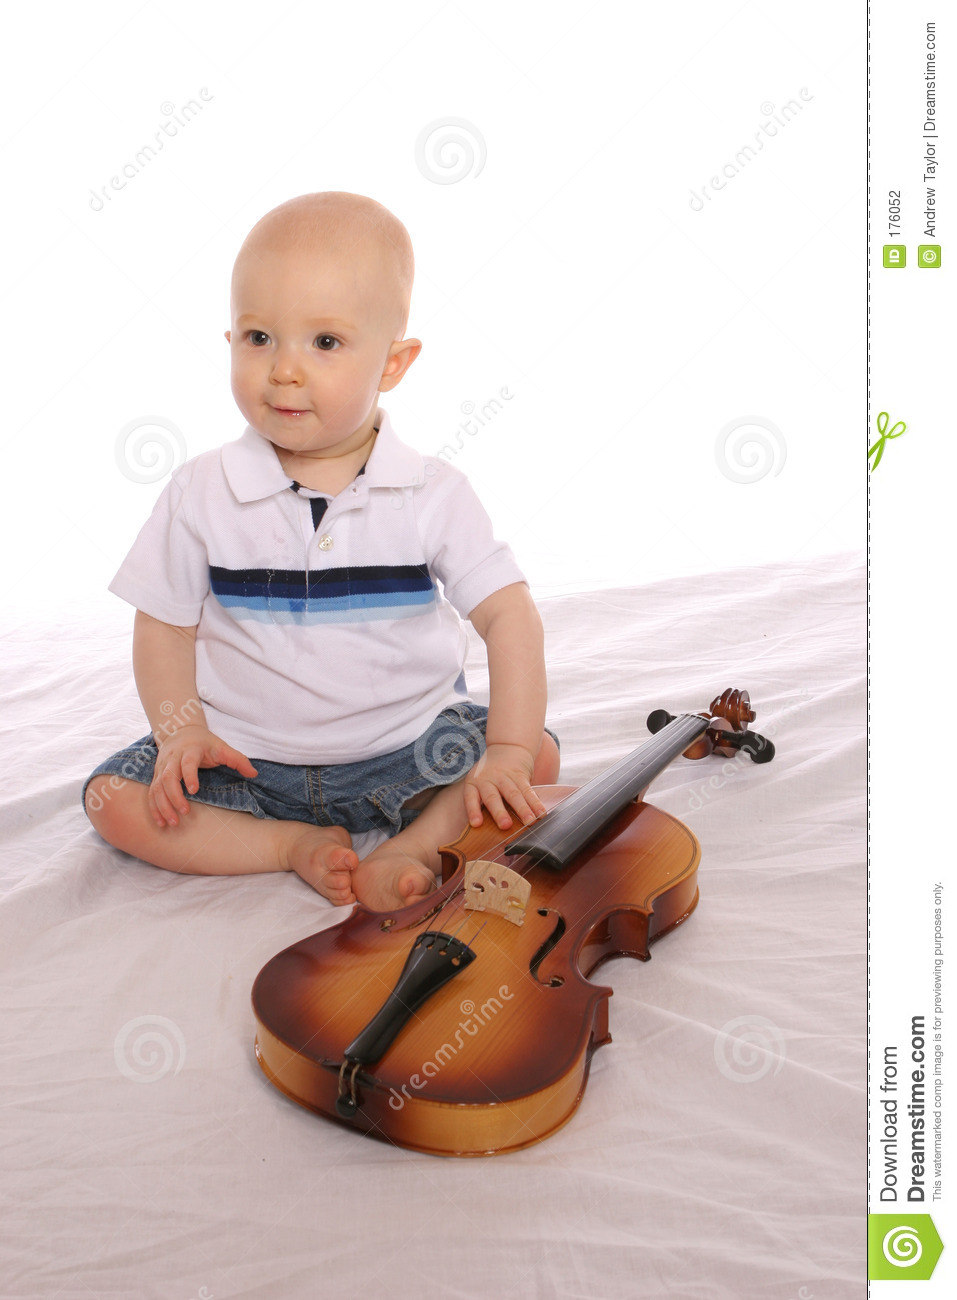 Baby Musician two